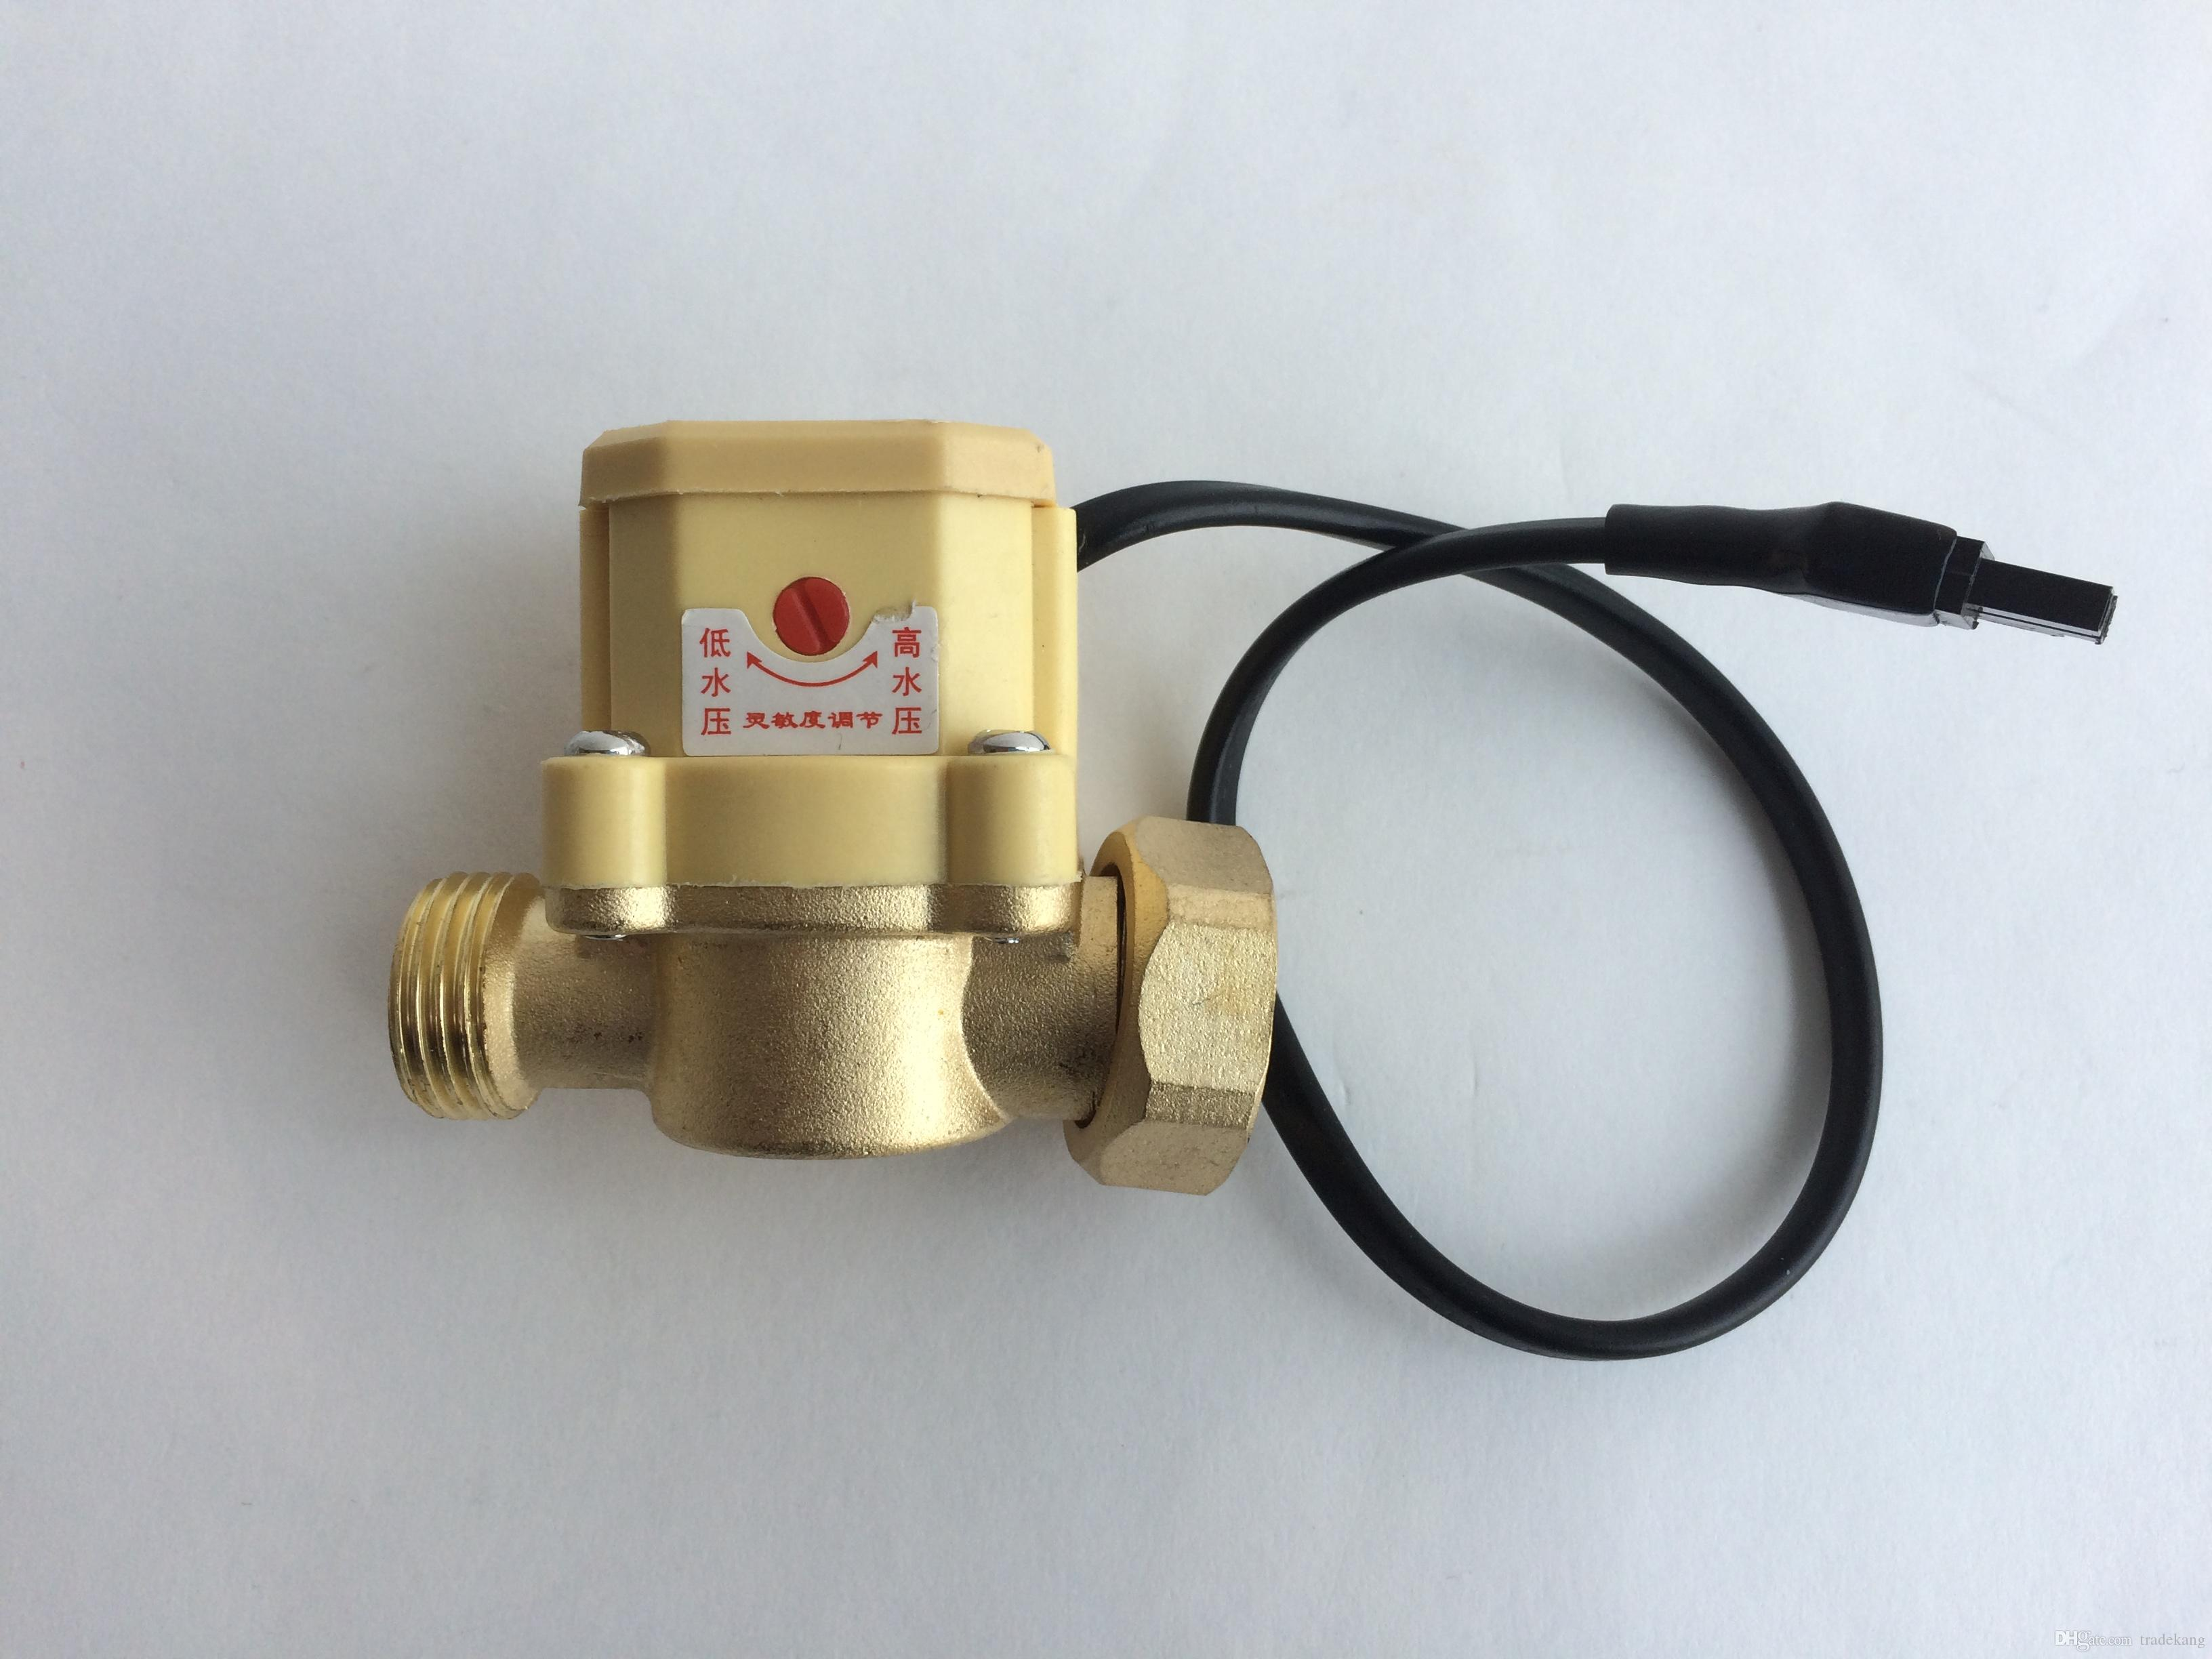 150W 220V 15L/Min electrical gas solar hot water heater Stainless Steel Water Pressure Booster Pump with automatic flow switch